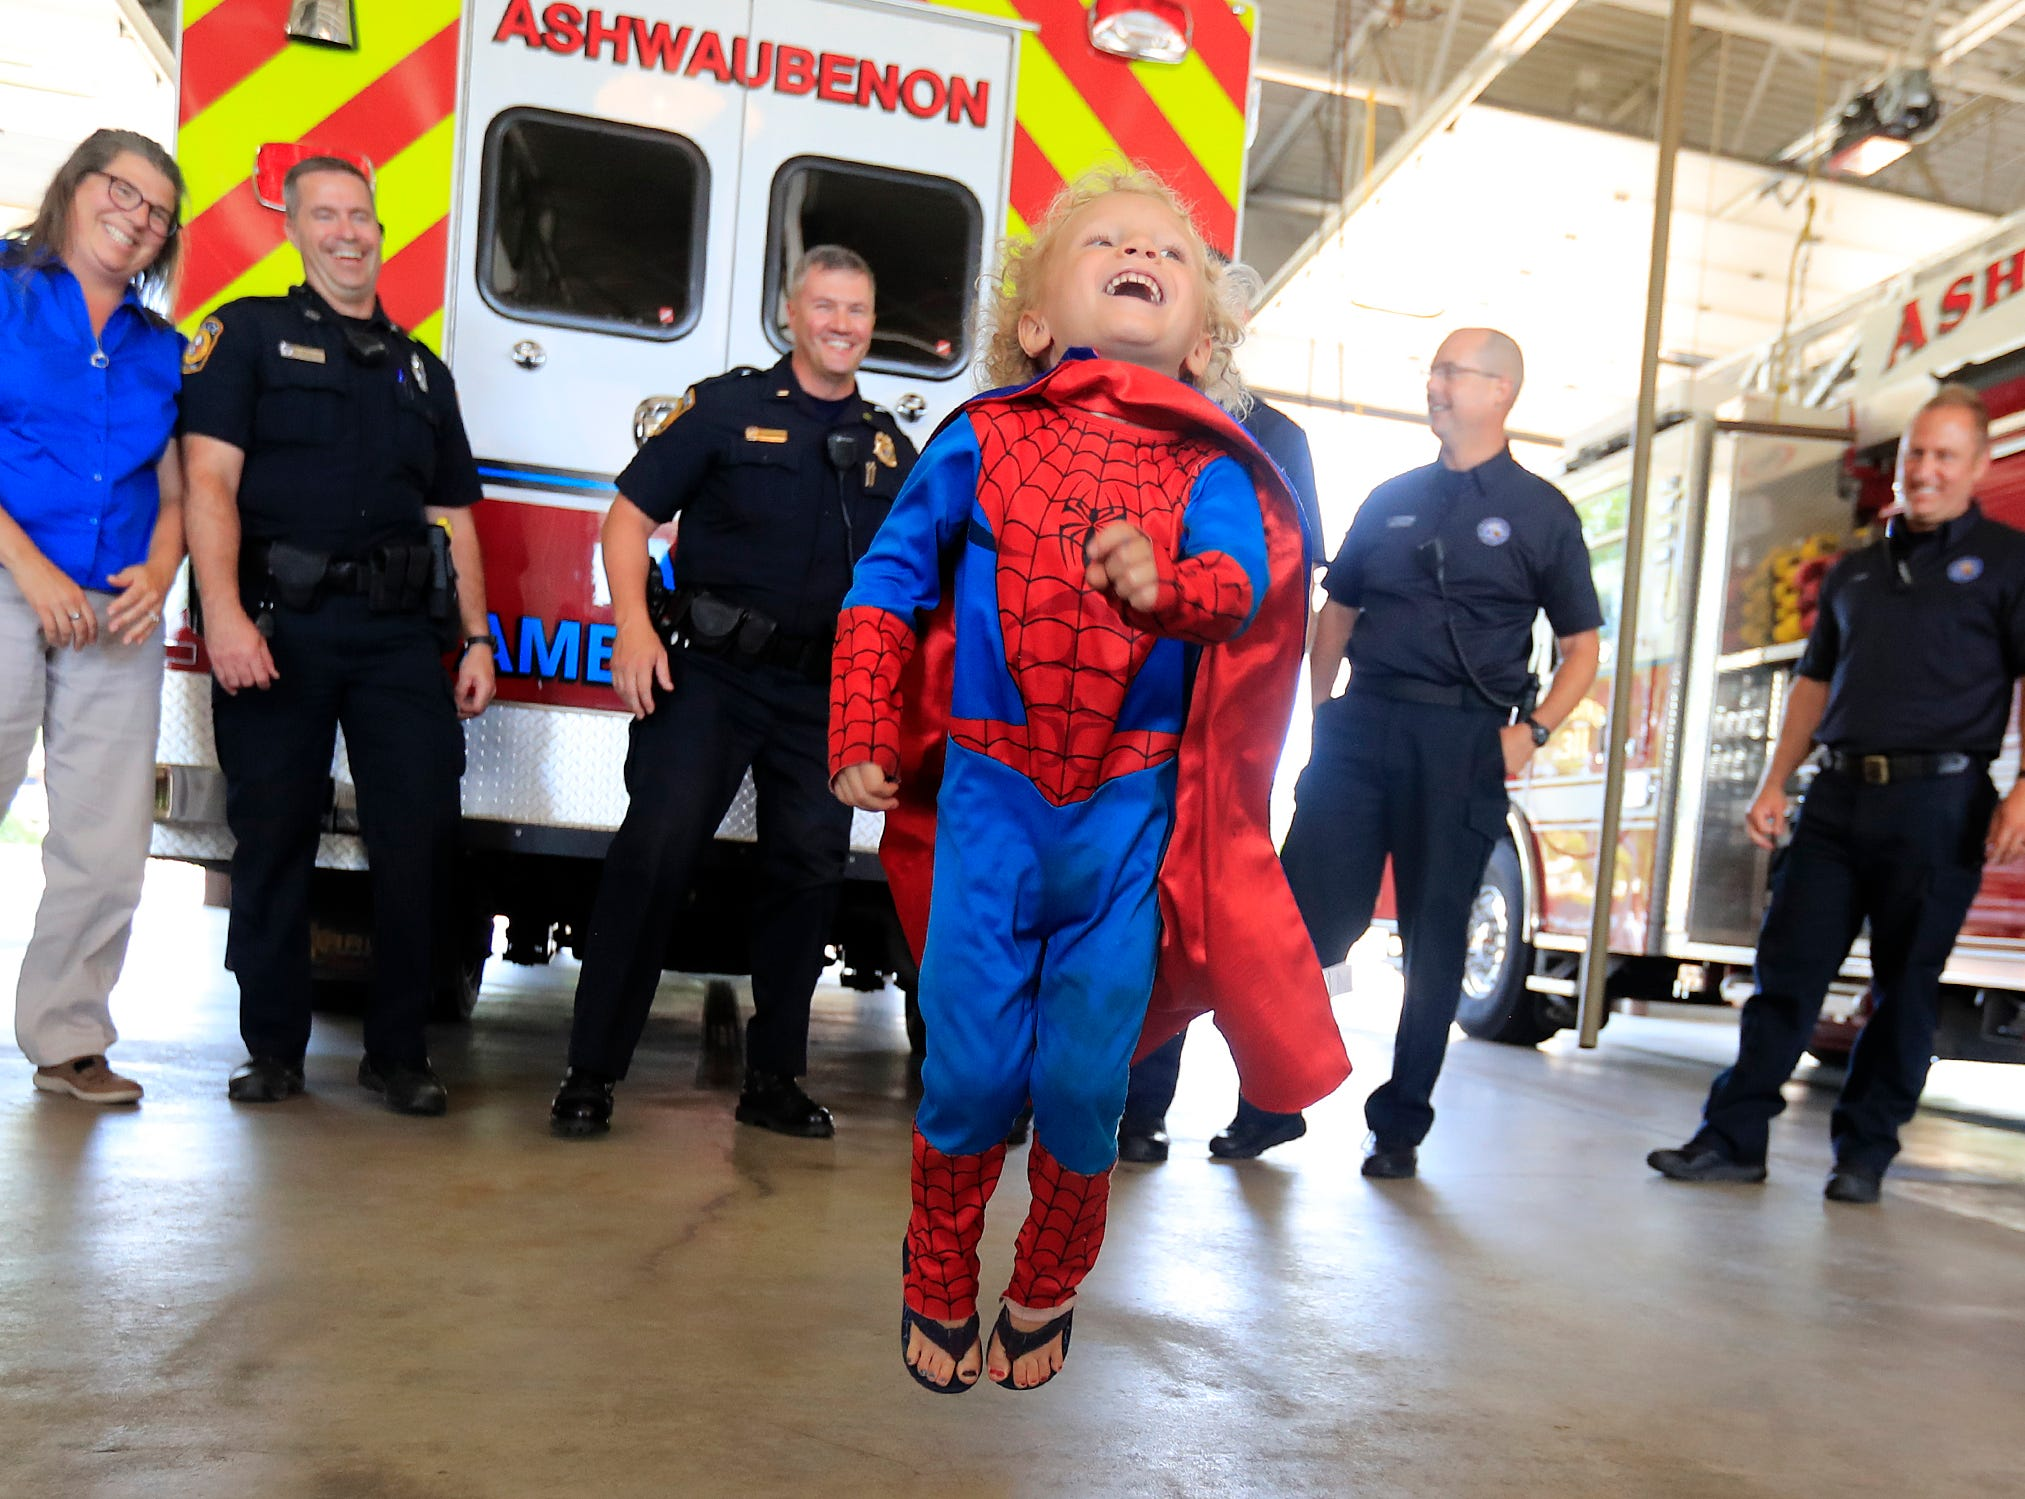 Calyx Harnowski, 3, runs around fire trucks and ambulances while meeting the first responders that saved his life a couple weeks ago when he nearly drowned at a pool party on Tuesday, July 10, 2018 in Ashwaubenon, Wis.